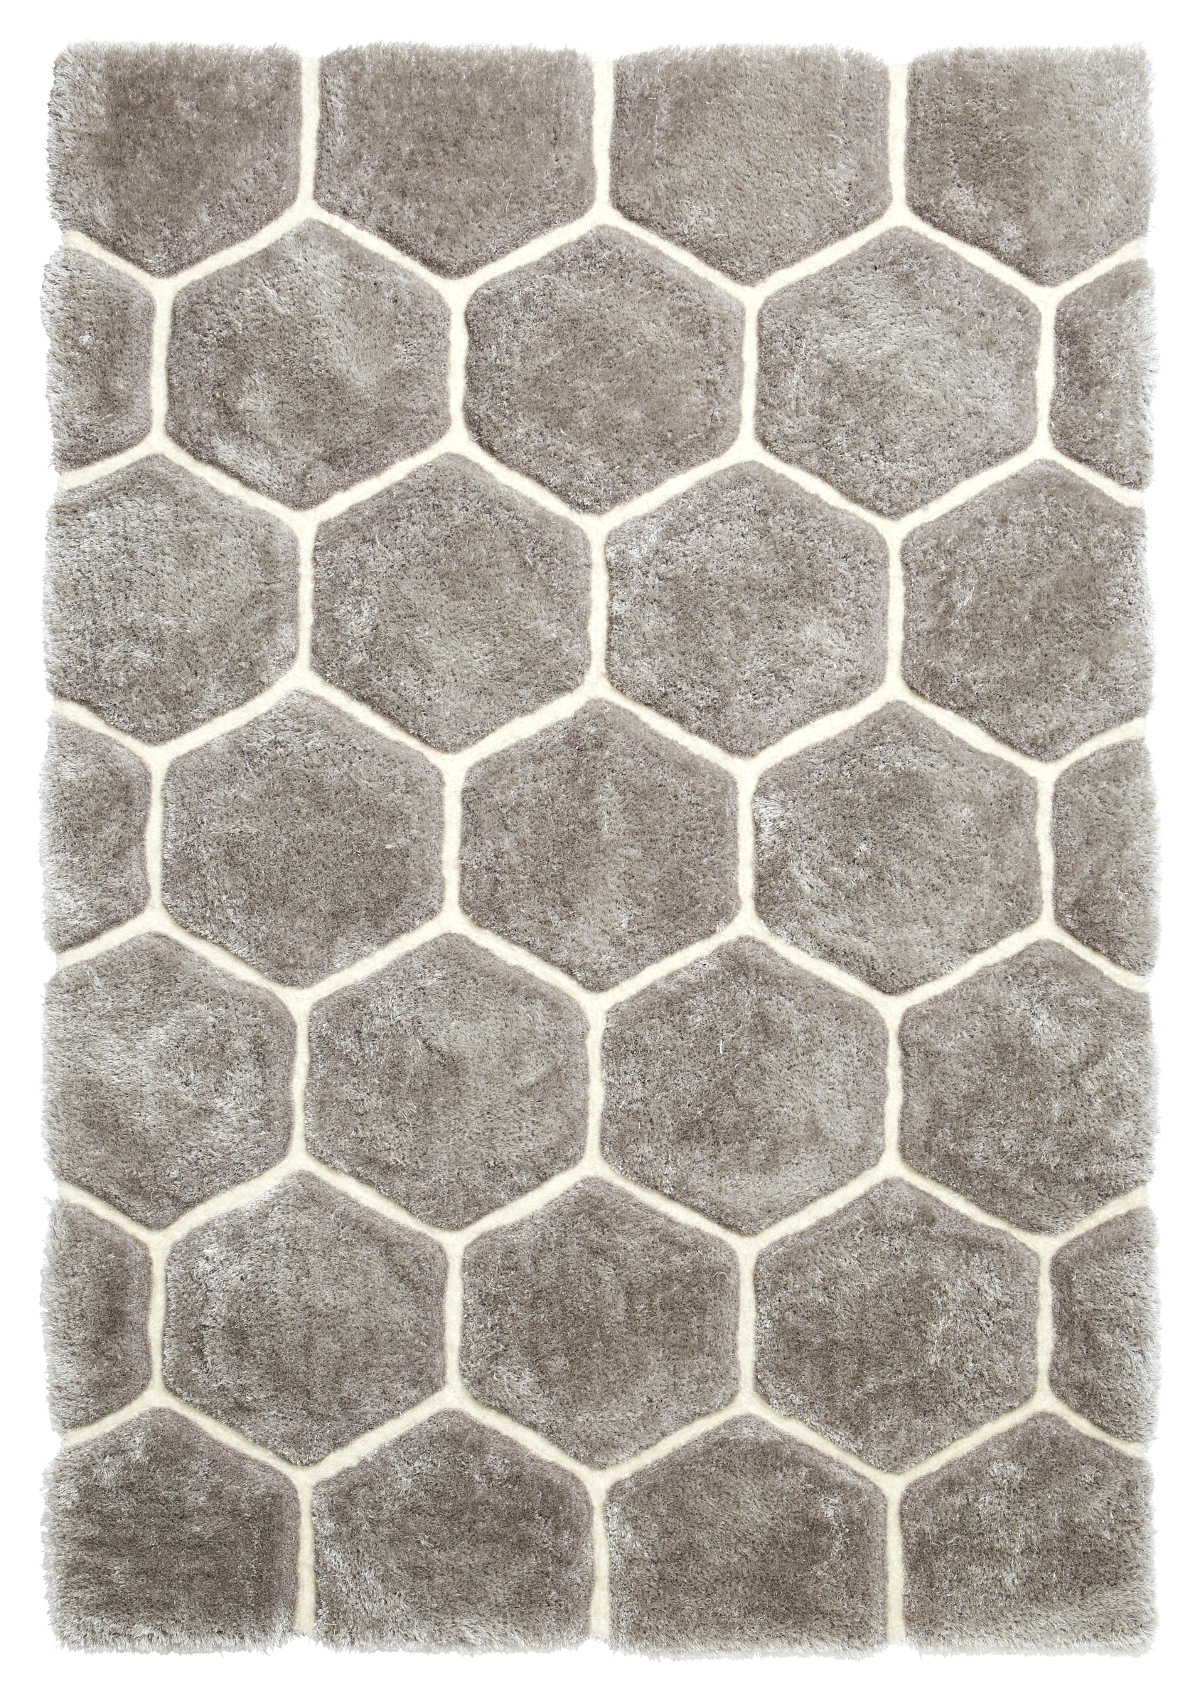 Picture of: Shaggy Rug Super Soft Noble House Hand Tufted Honeycomb Hexagon Home Decor Mat For Sale